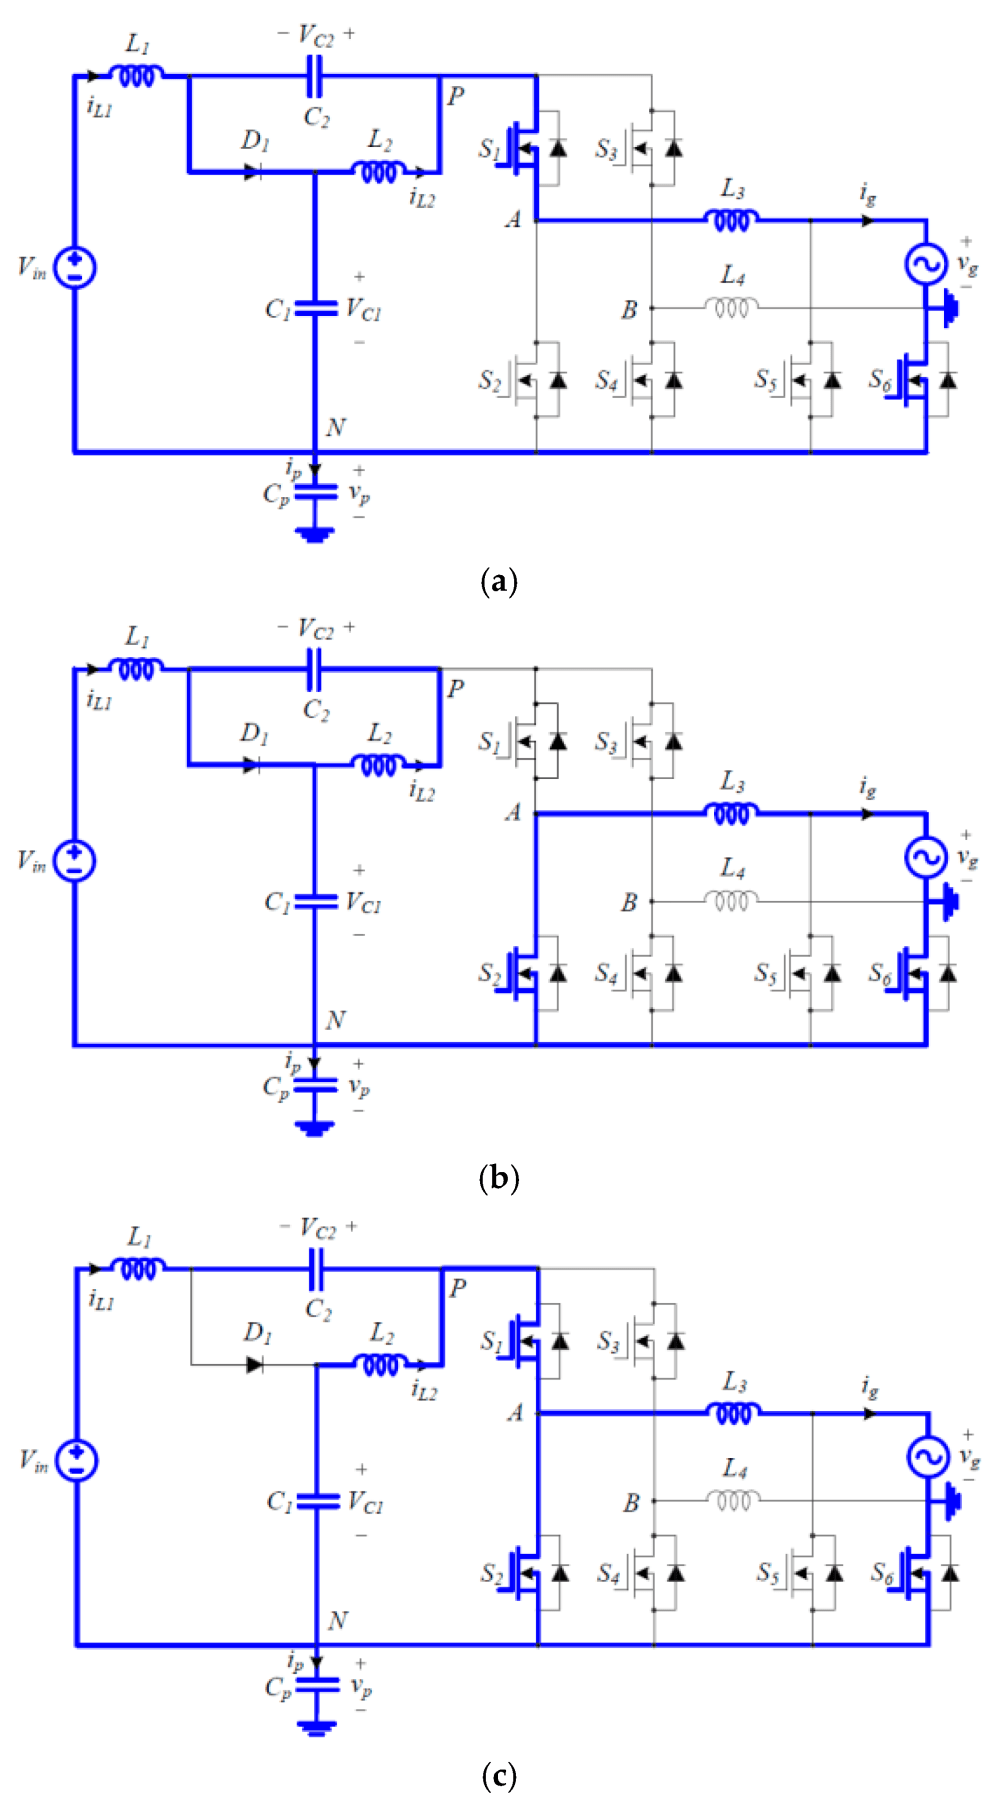 medium resolution of electronics 08 00312 g003 figure 3 switching circuit diagrams of the proposed inverter